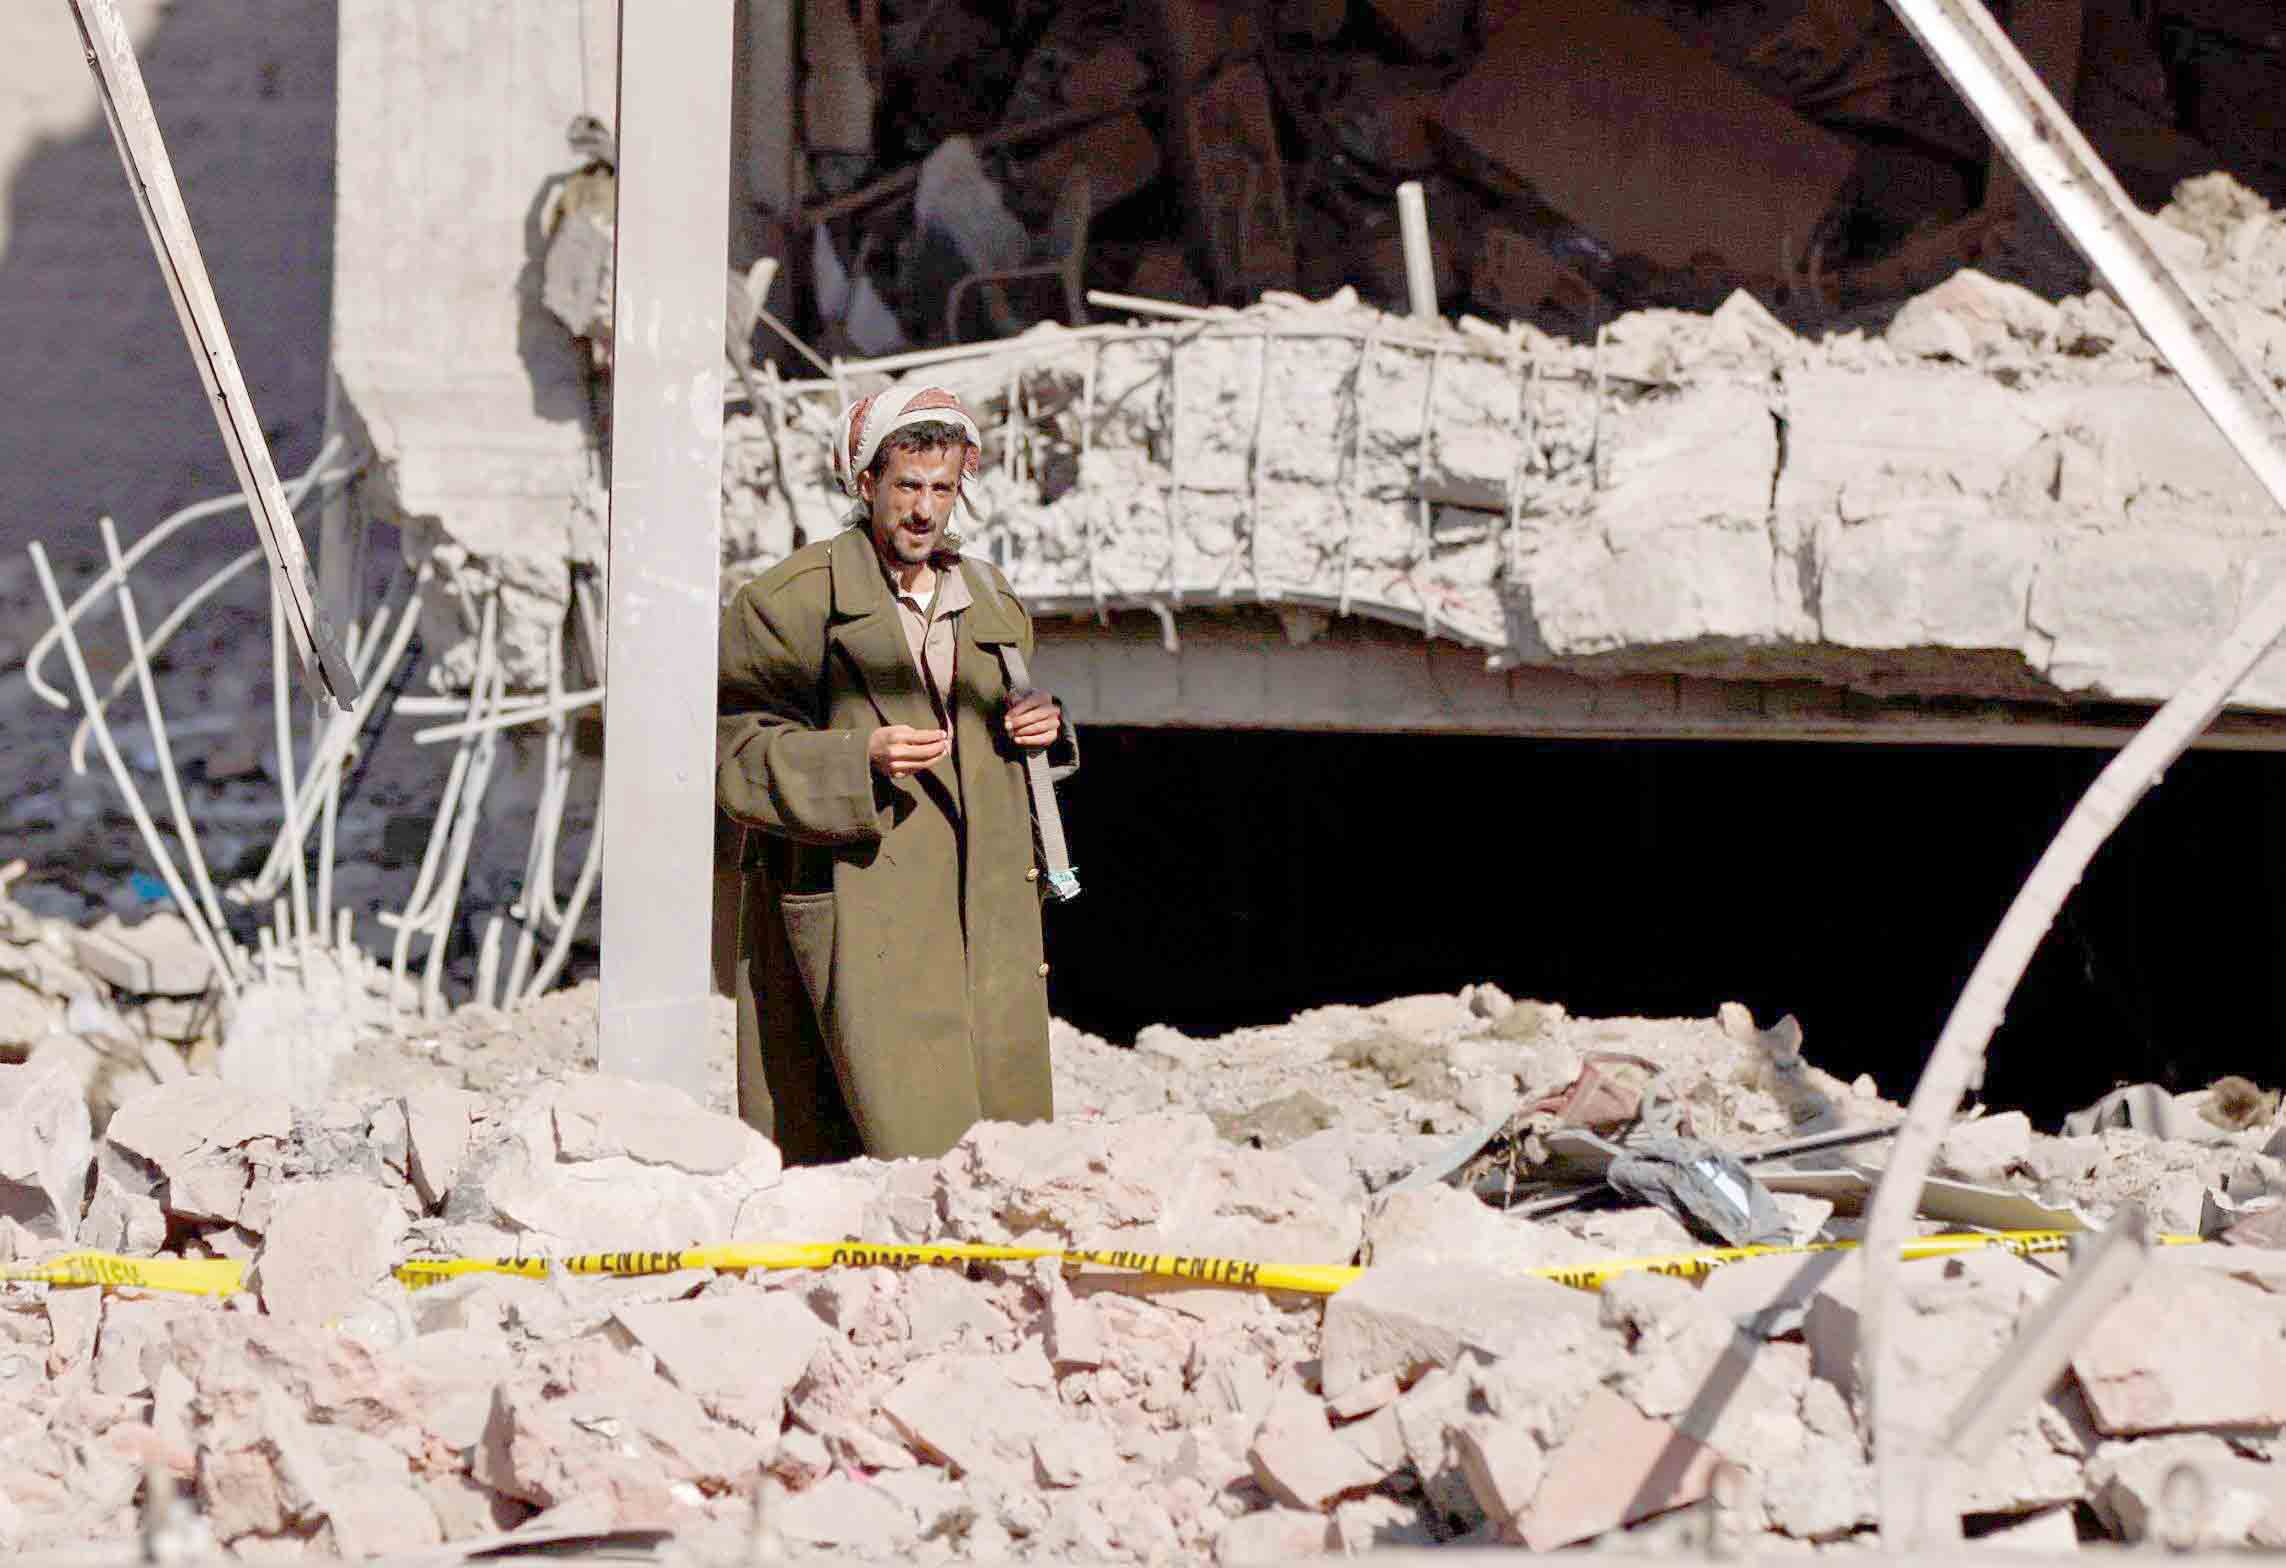 A Houthi fighter stands in the rubble of a building in Sana'a. (AFP)